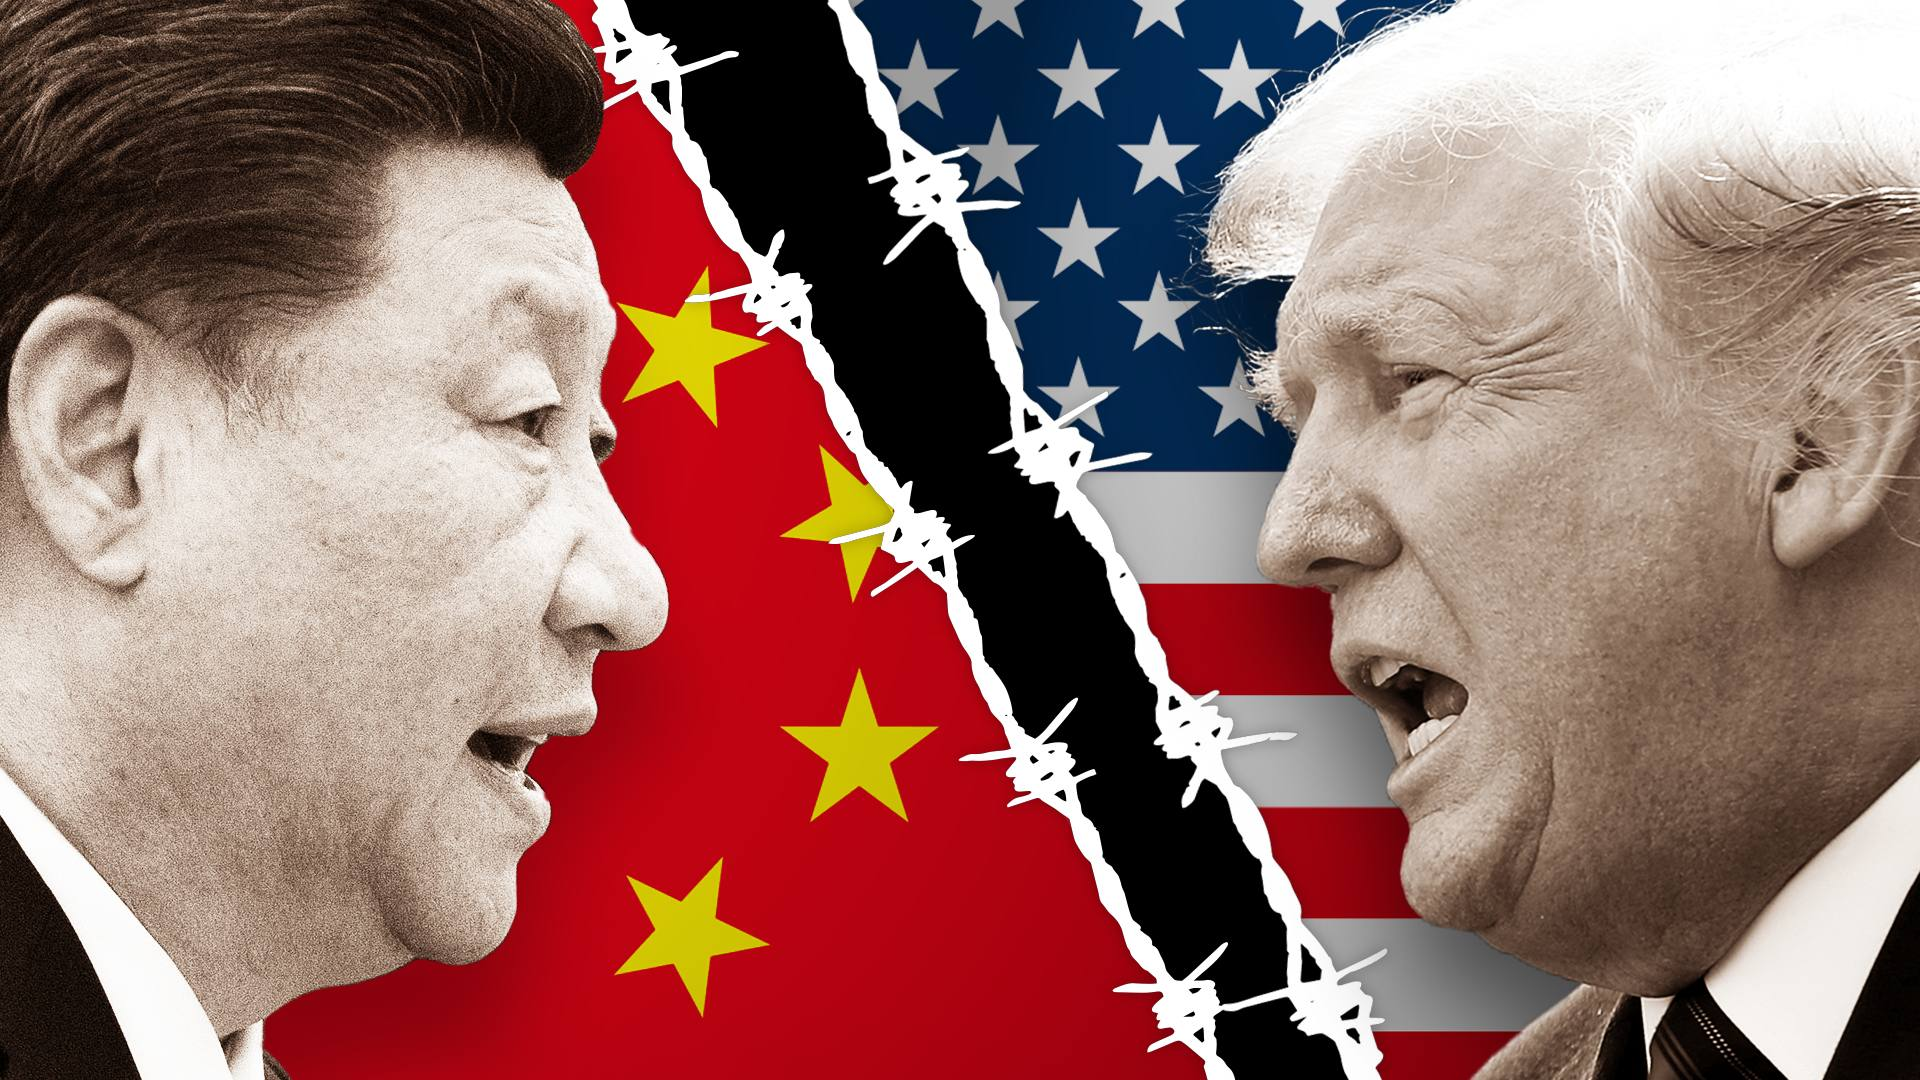 Five things to know about the Trump-Xi summit in Osaka - Nikkei ...